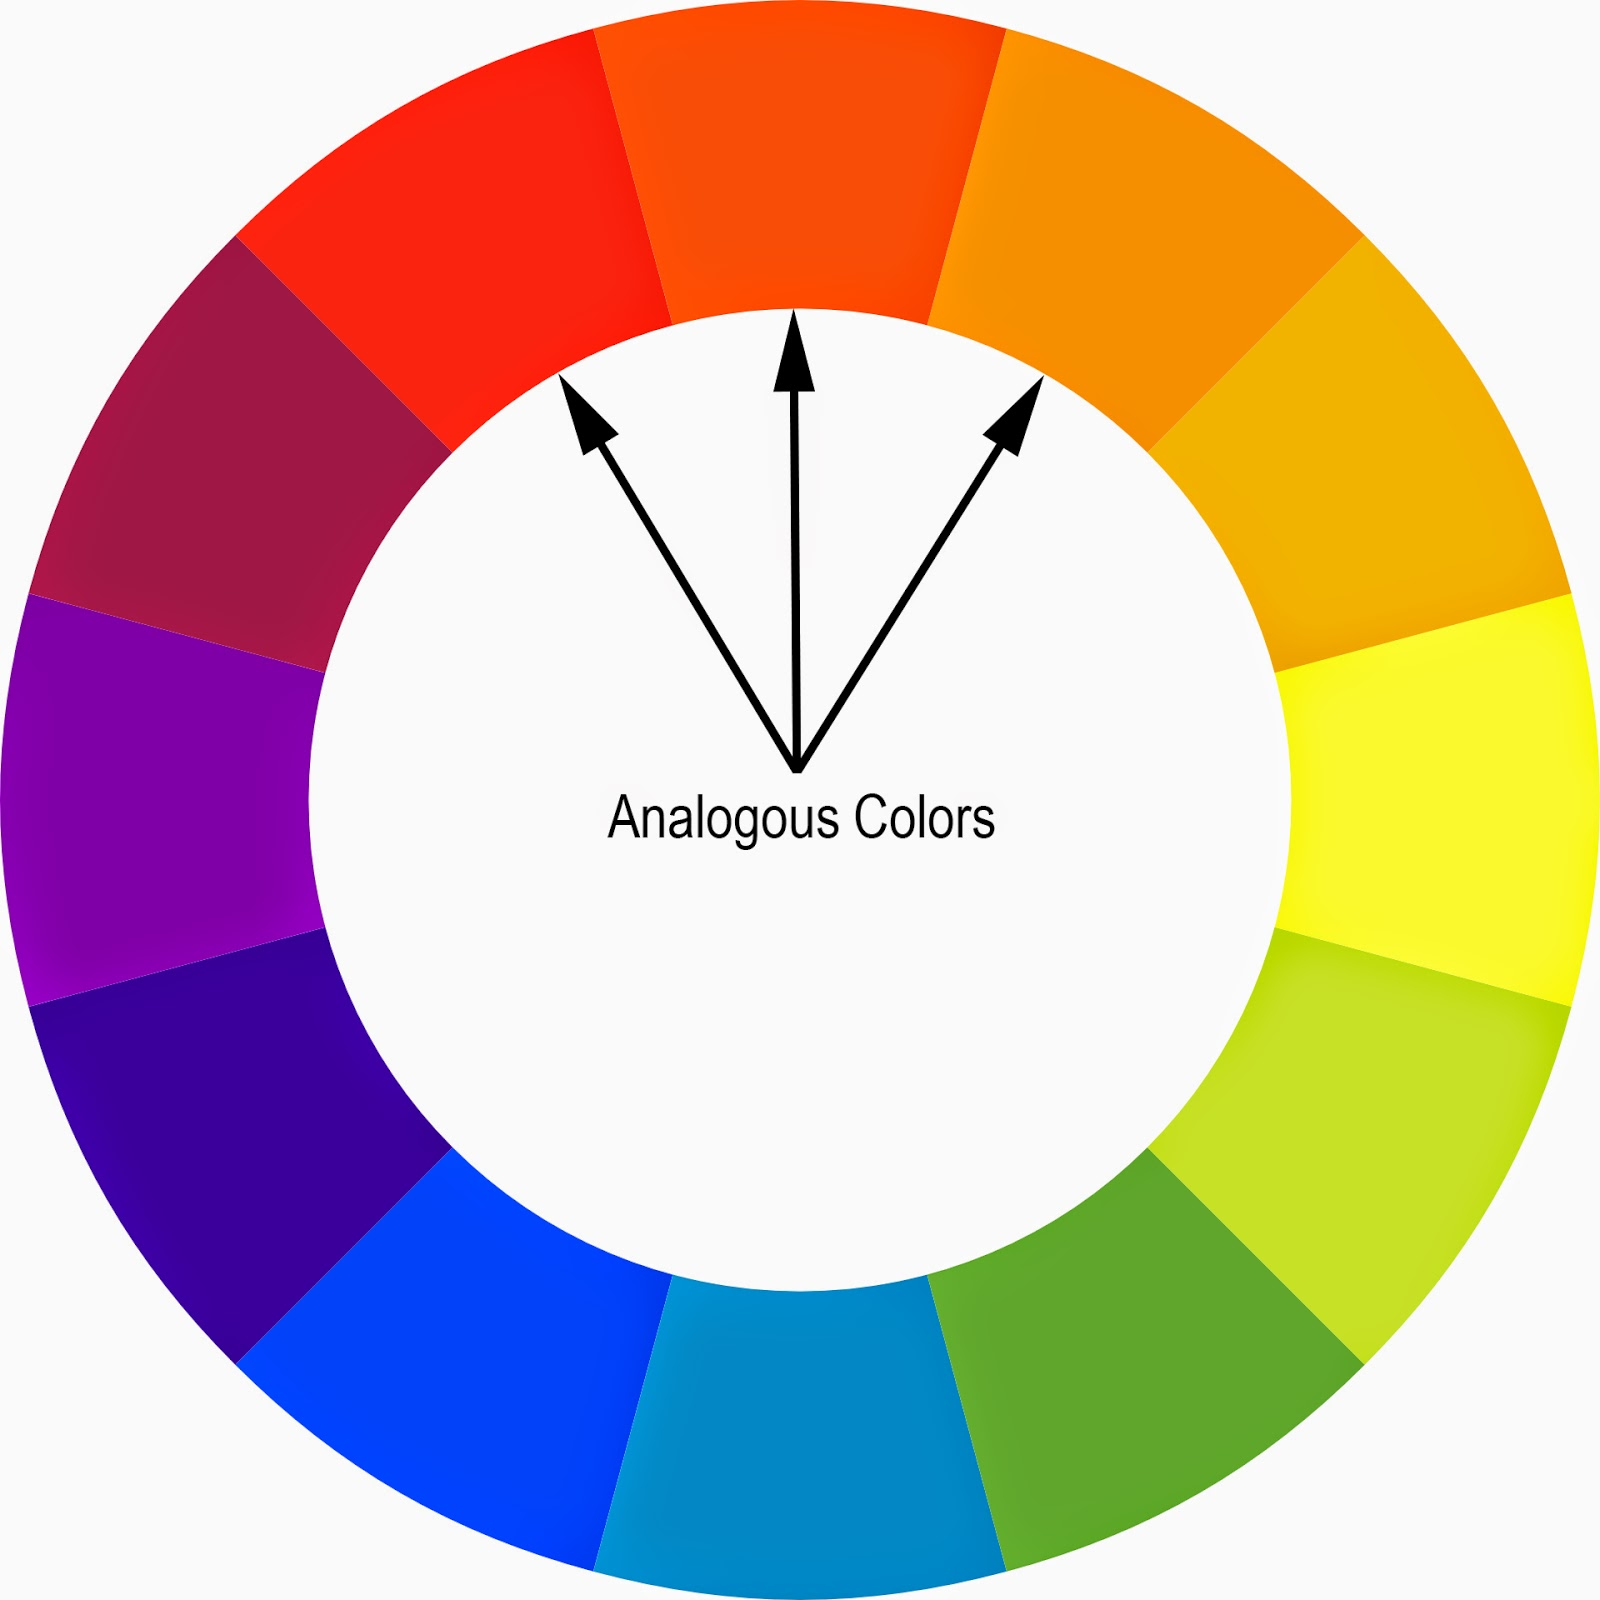 Color wheel complementary colors - Analogous Colors Are Those That Are Adjacent To One Another On The Color Wheel Using Analogous Colors In Either Cool Or Warm Tones In A Redesigned Room